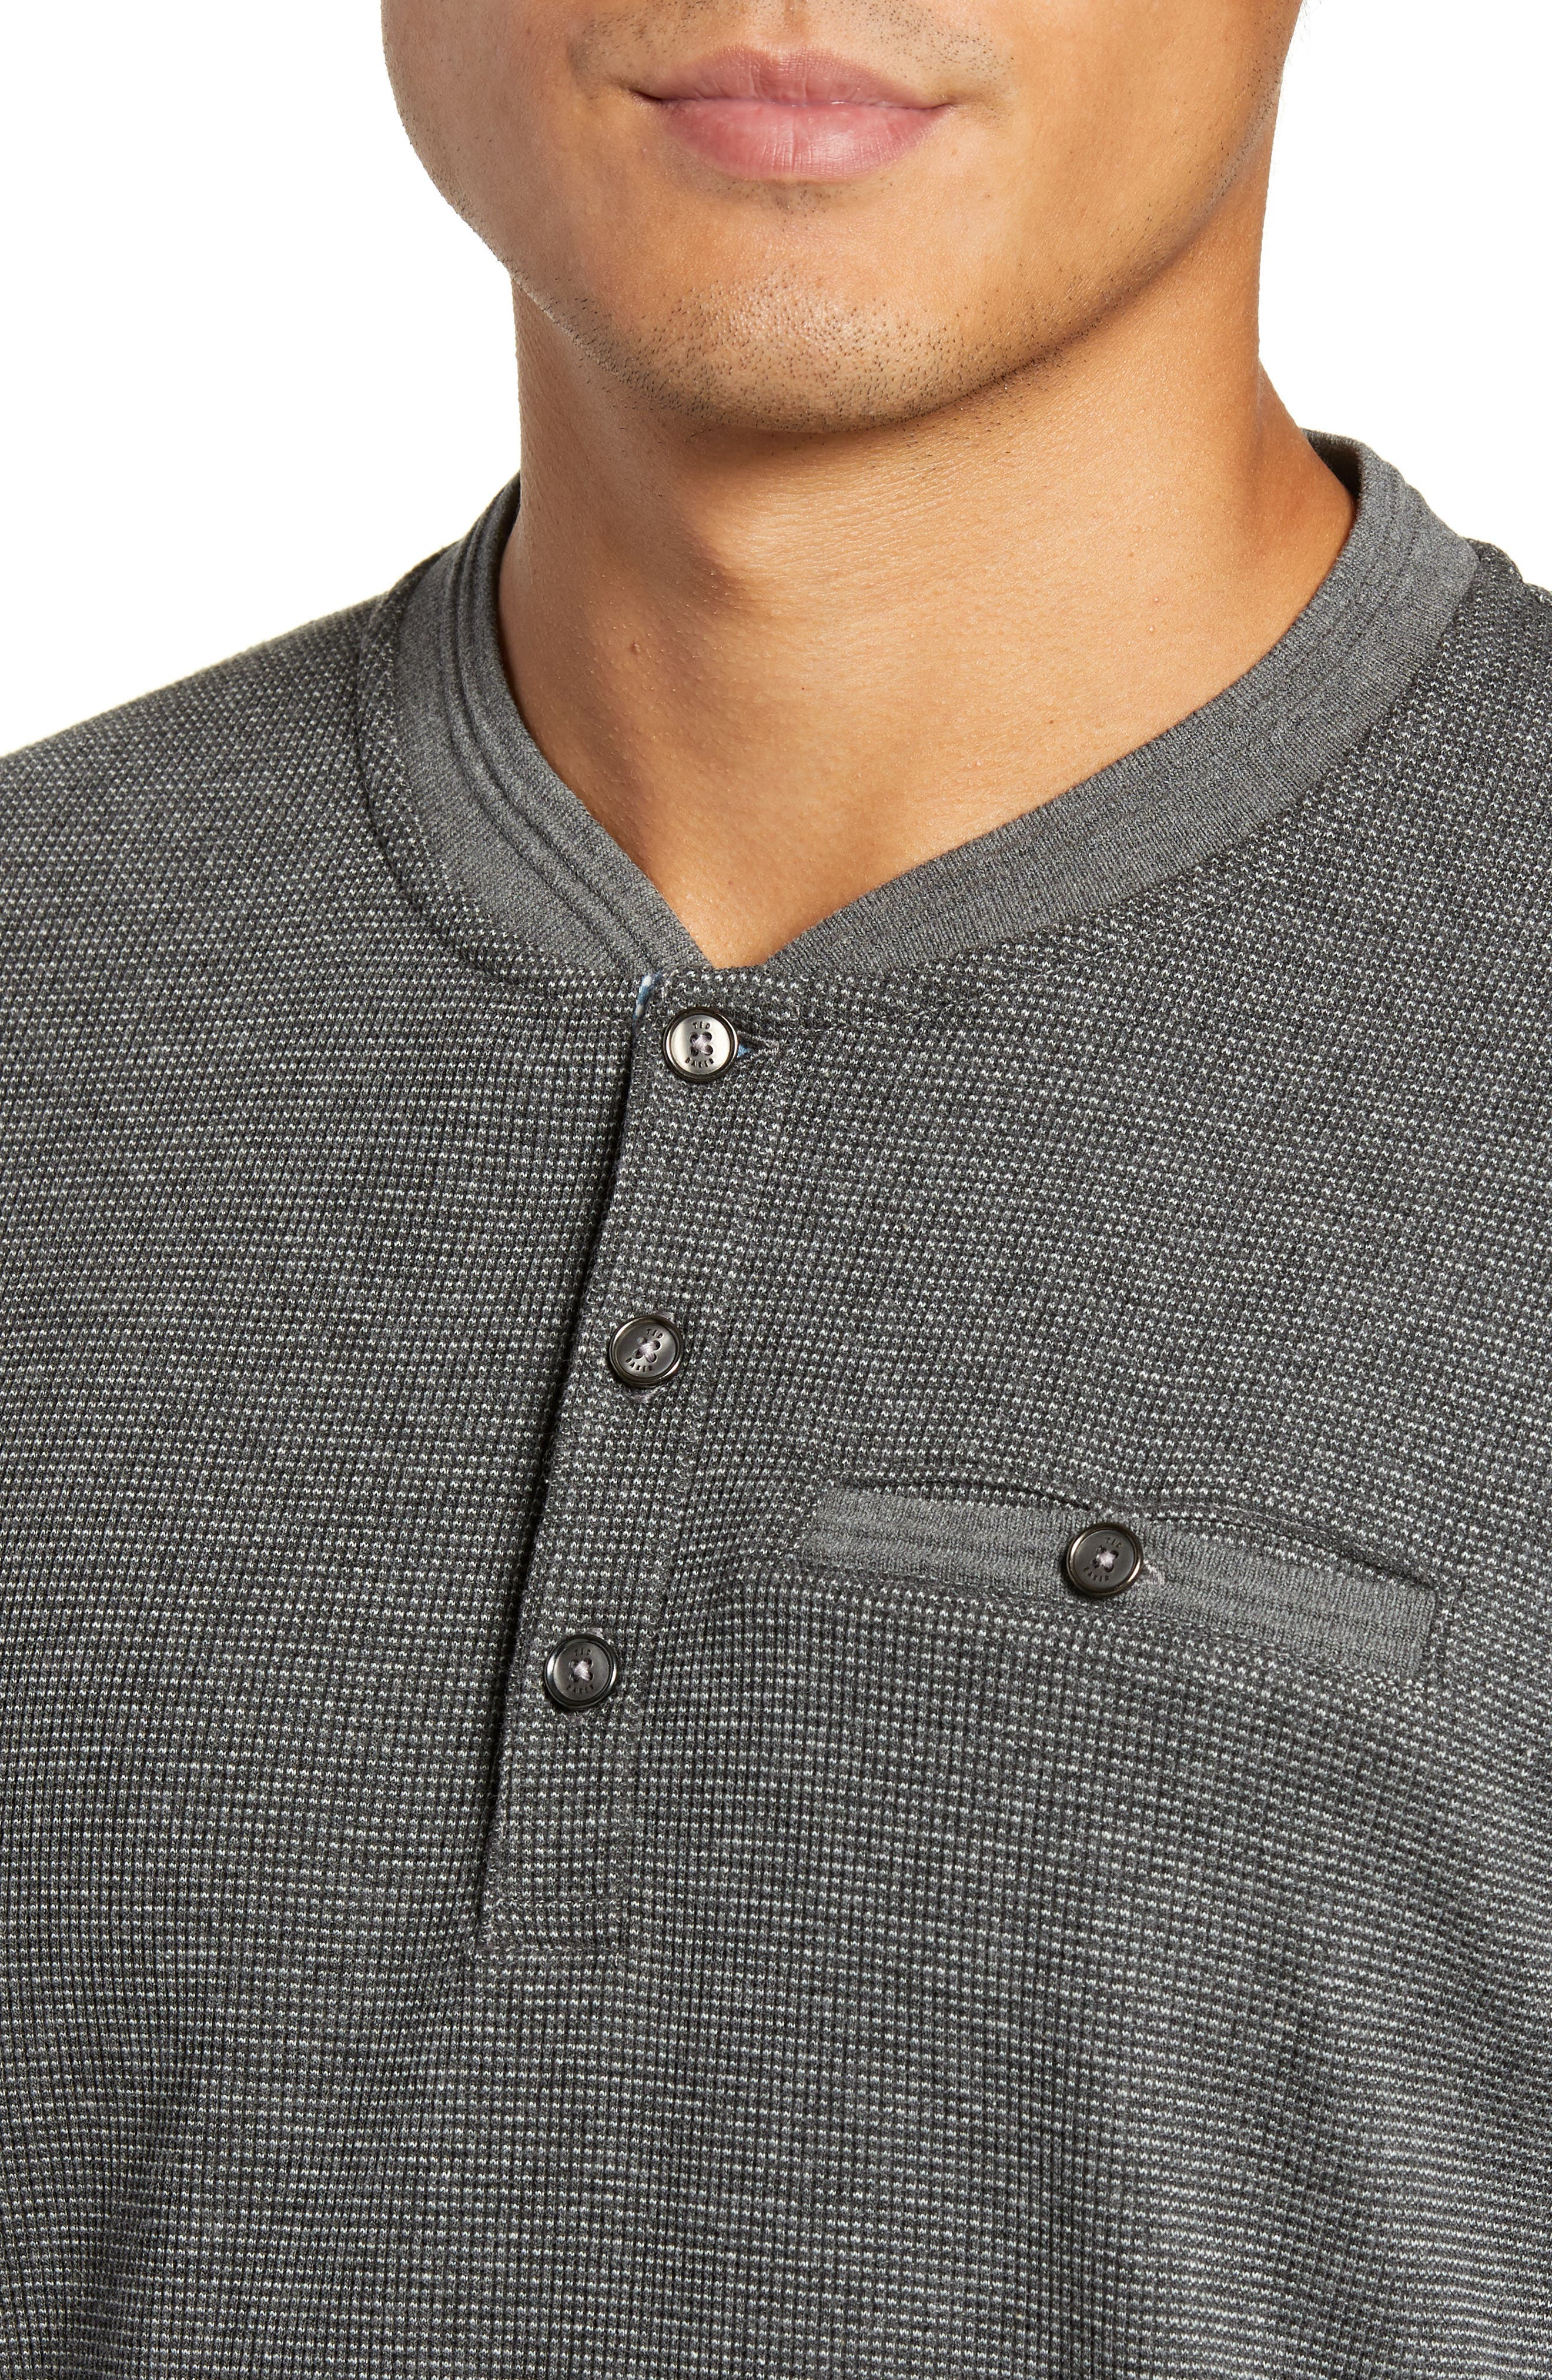 Slim Fit Mojave Thermal Pocket Henley,                             Alternate thumbnail 4, color,                             CHARCOAL